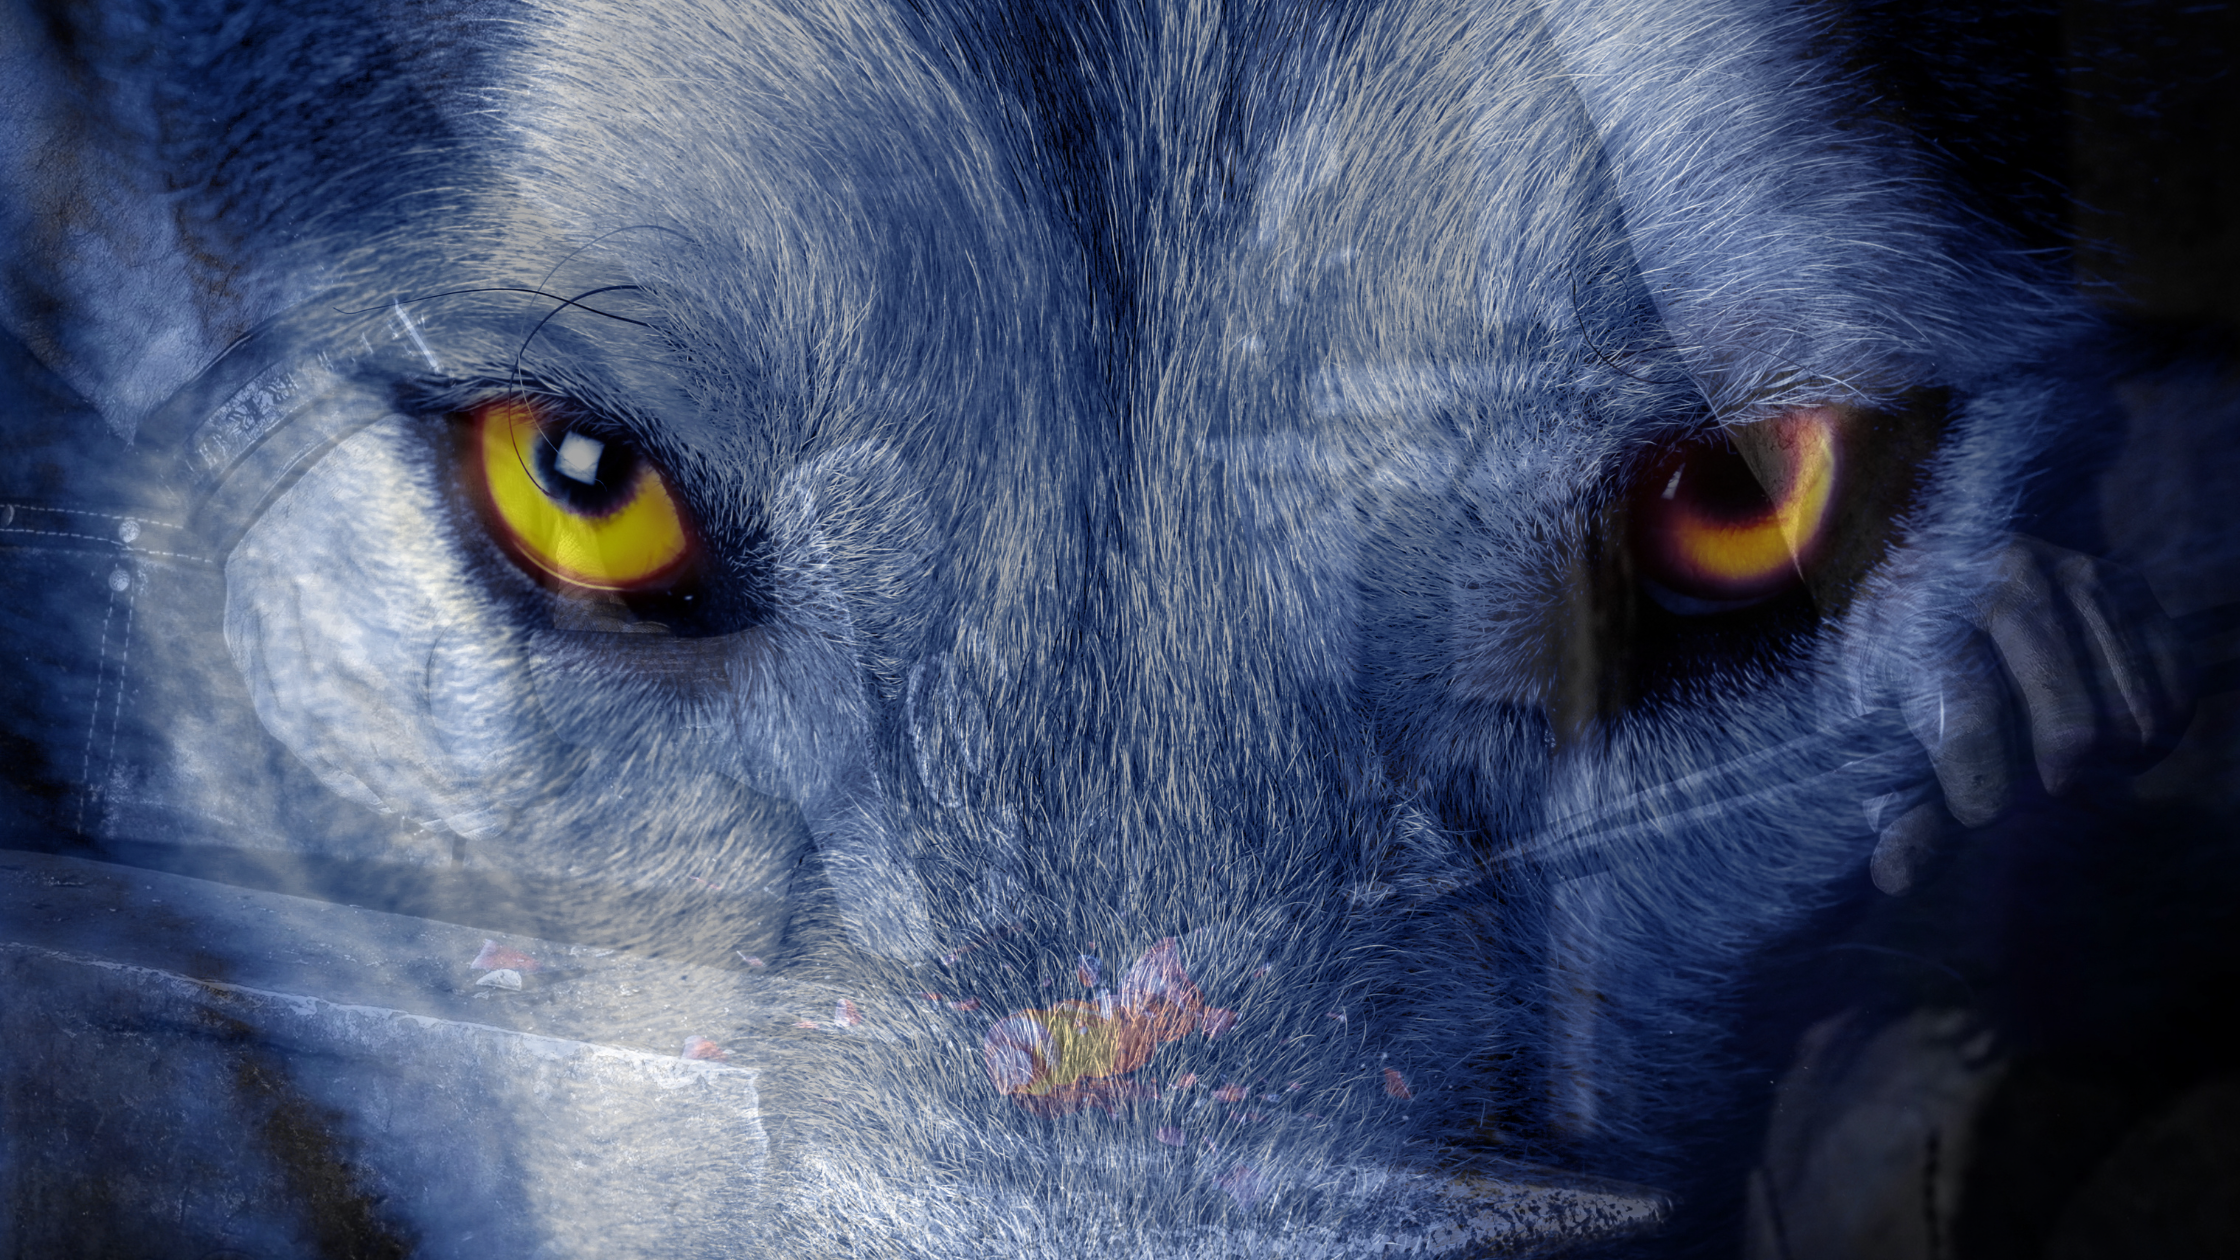 A closeup on a wolf's face focusing on golden eyes with a faint overlay of a blacksmith working at his forge.